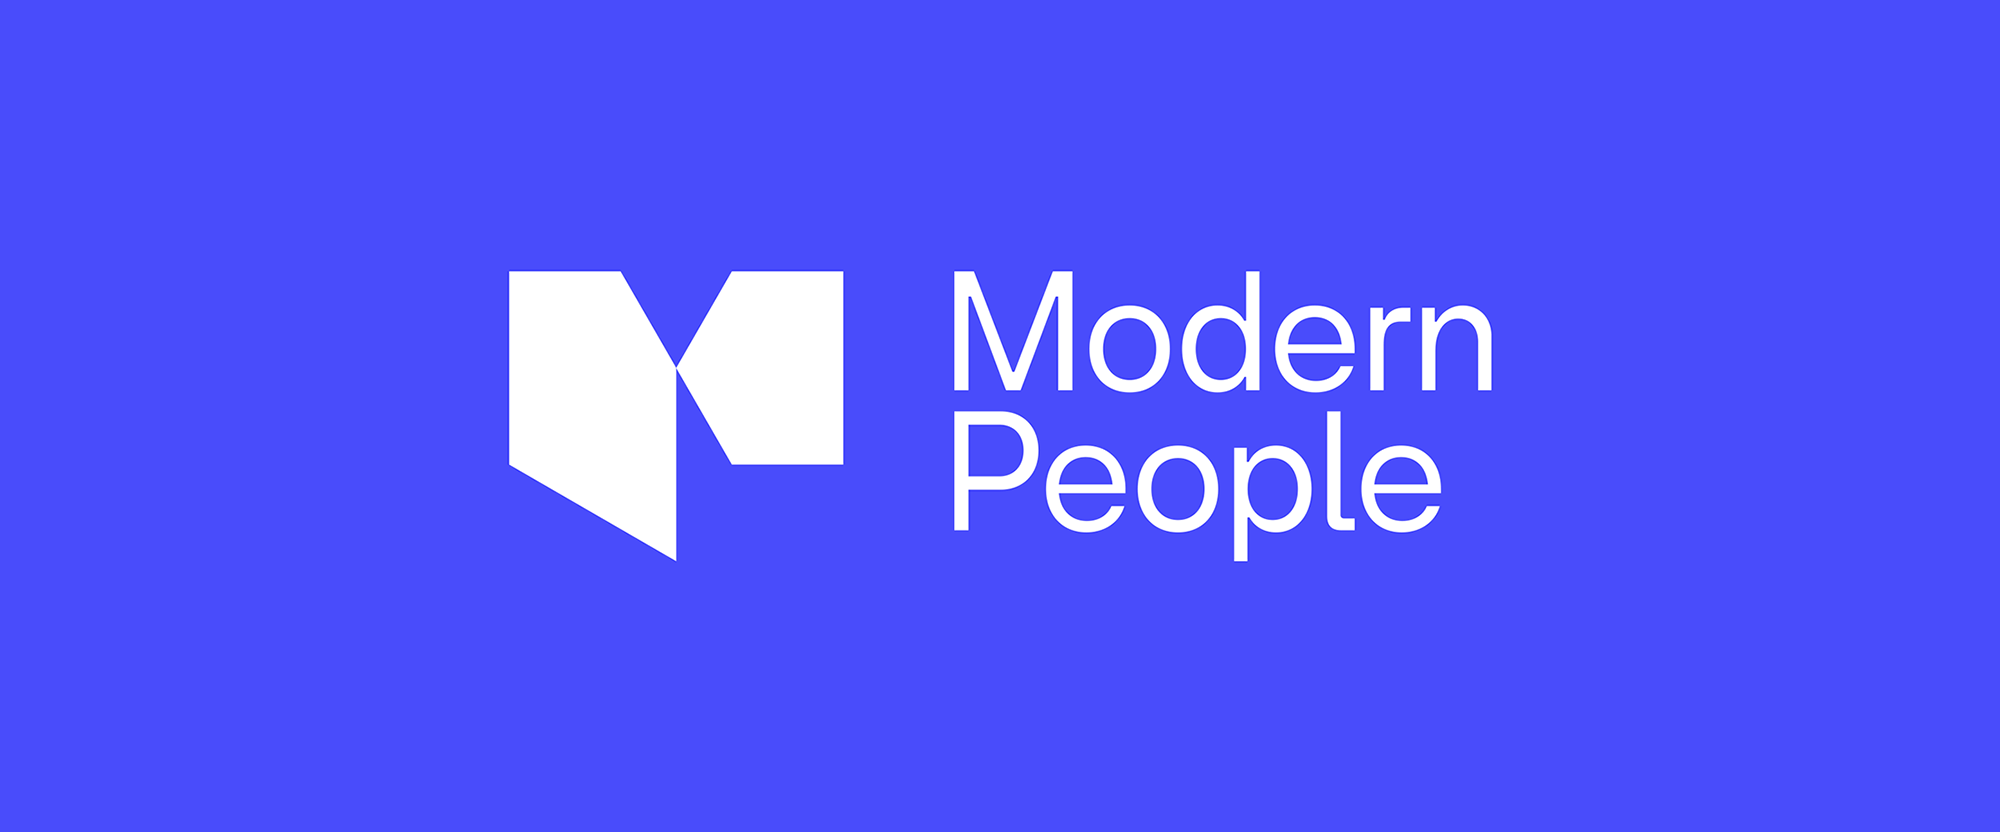 New Logo and Identity for Modern People by Merkitys